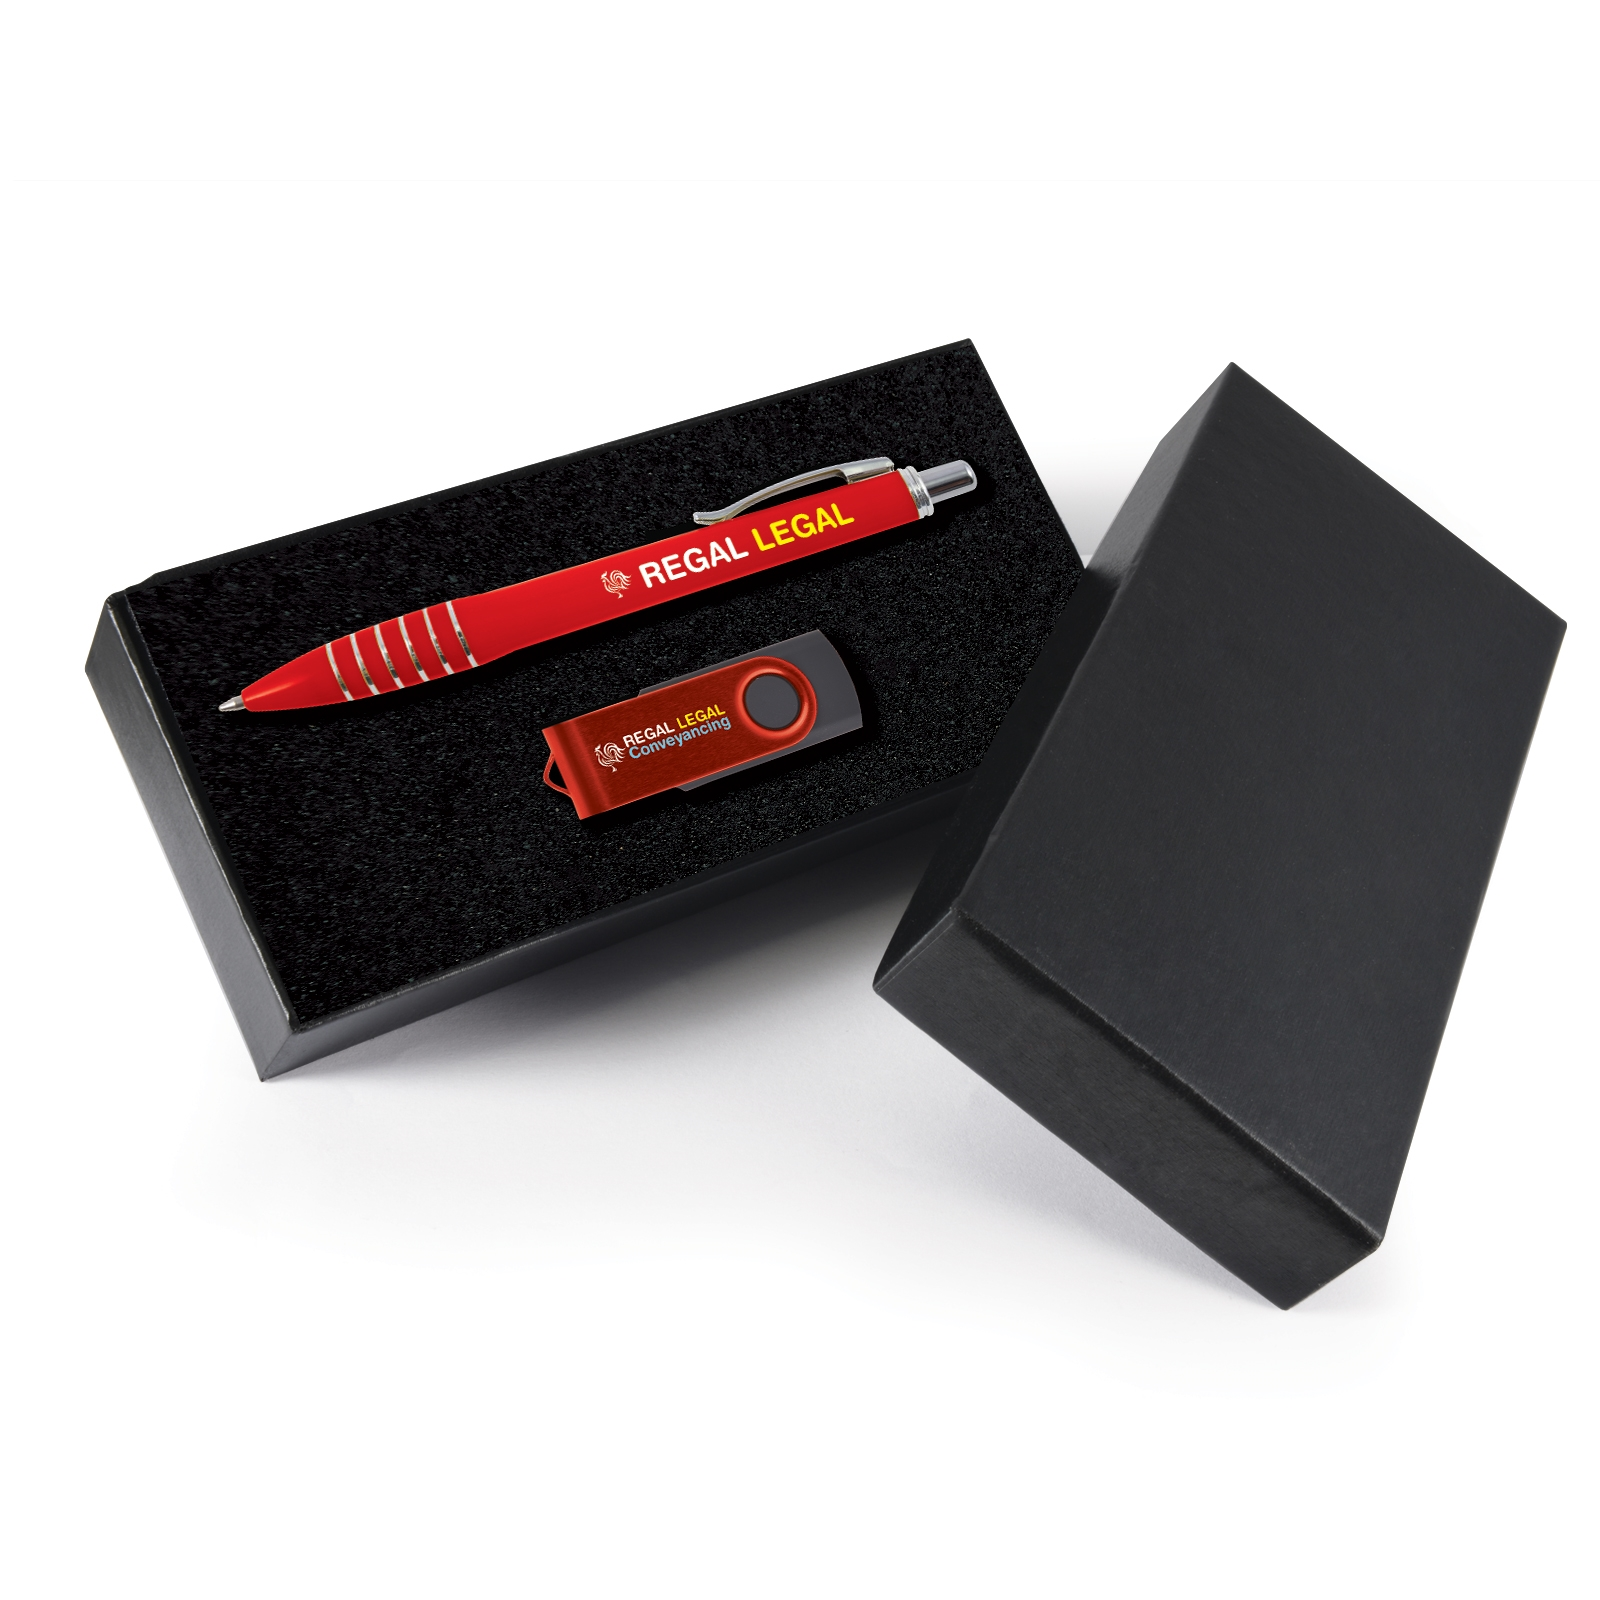 Destiny Gift Set - 2 Pos Digital Print - Pen + Flash Drive